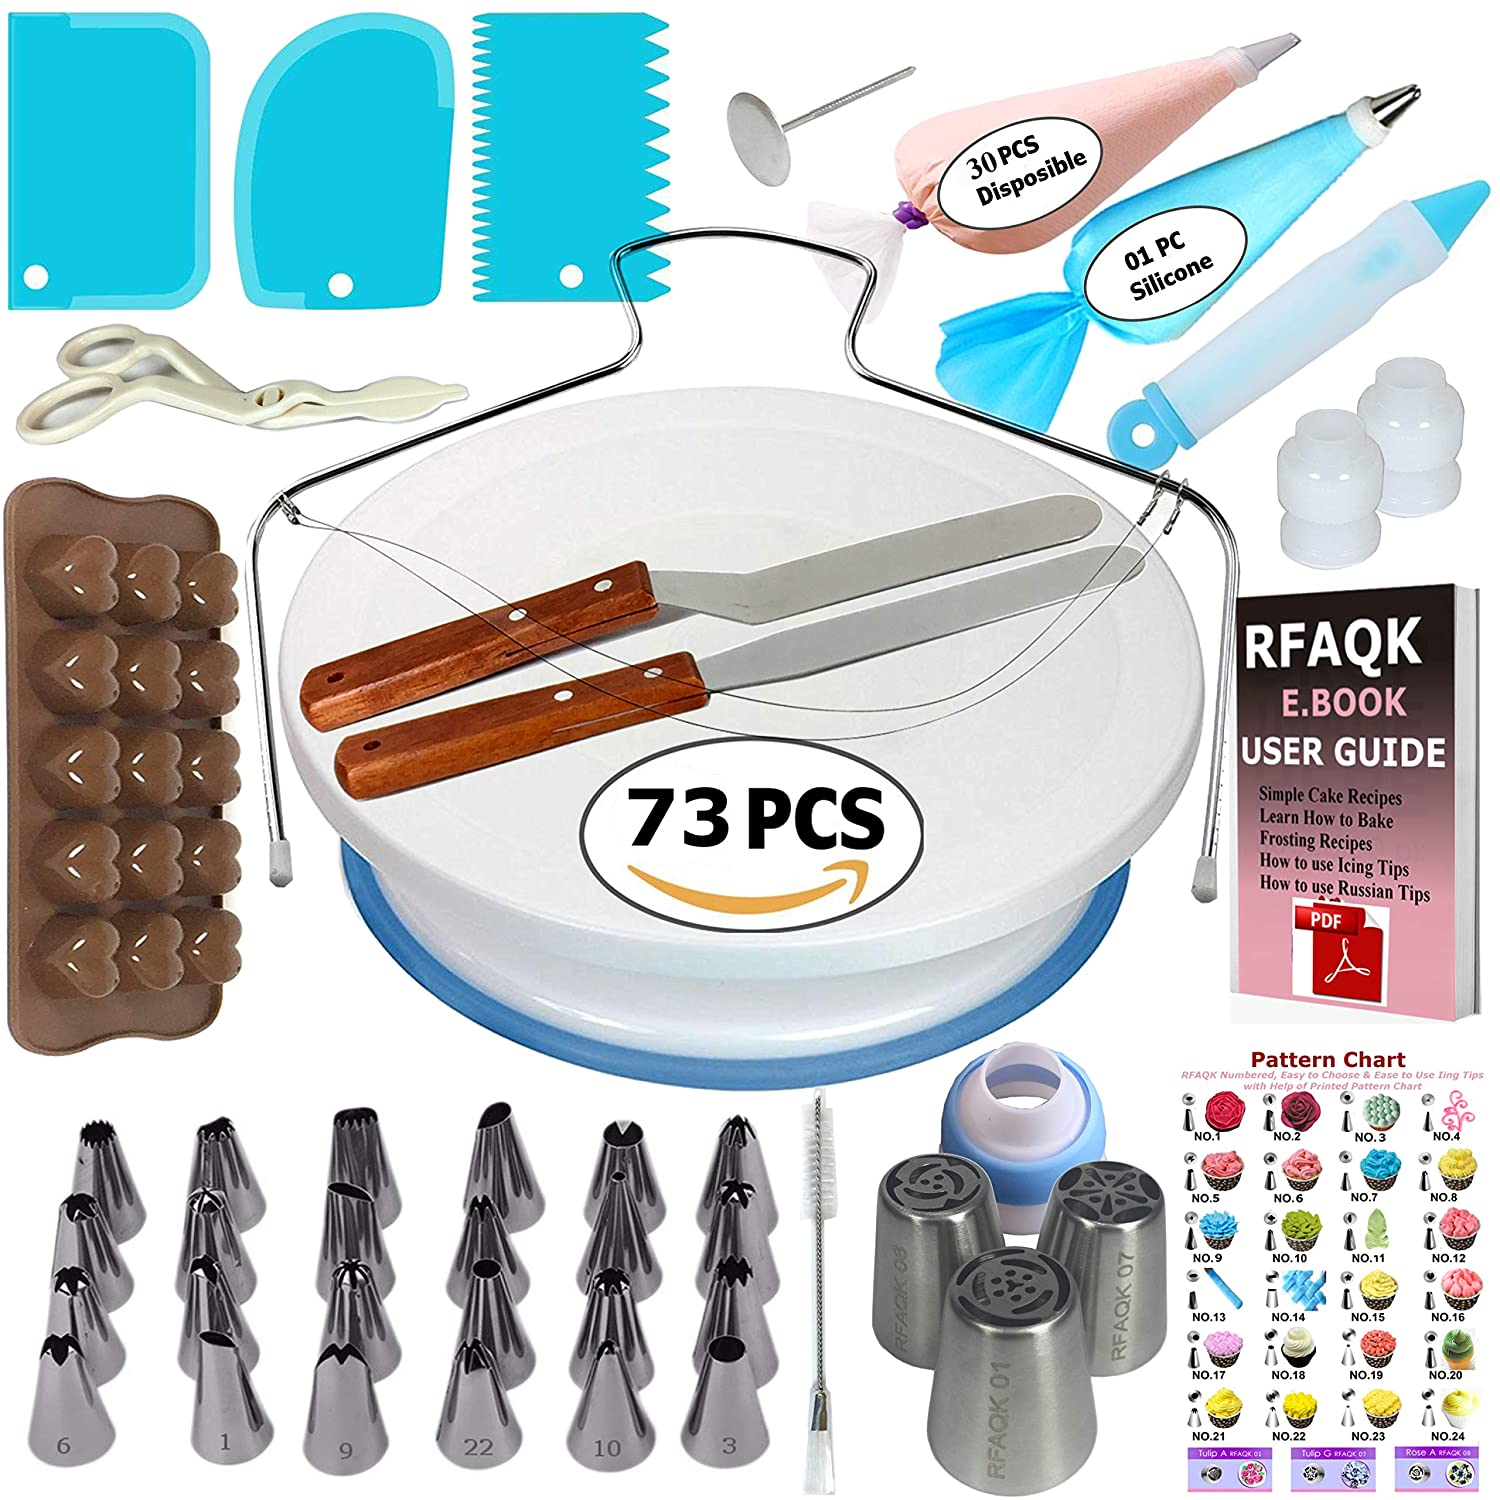 73 pcs Cake Decorating Supplies Kit for Beginners